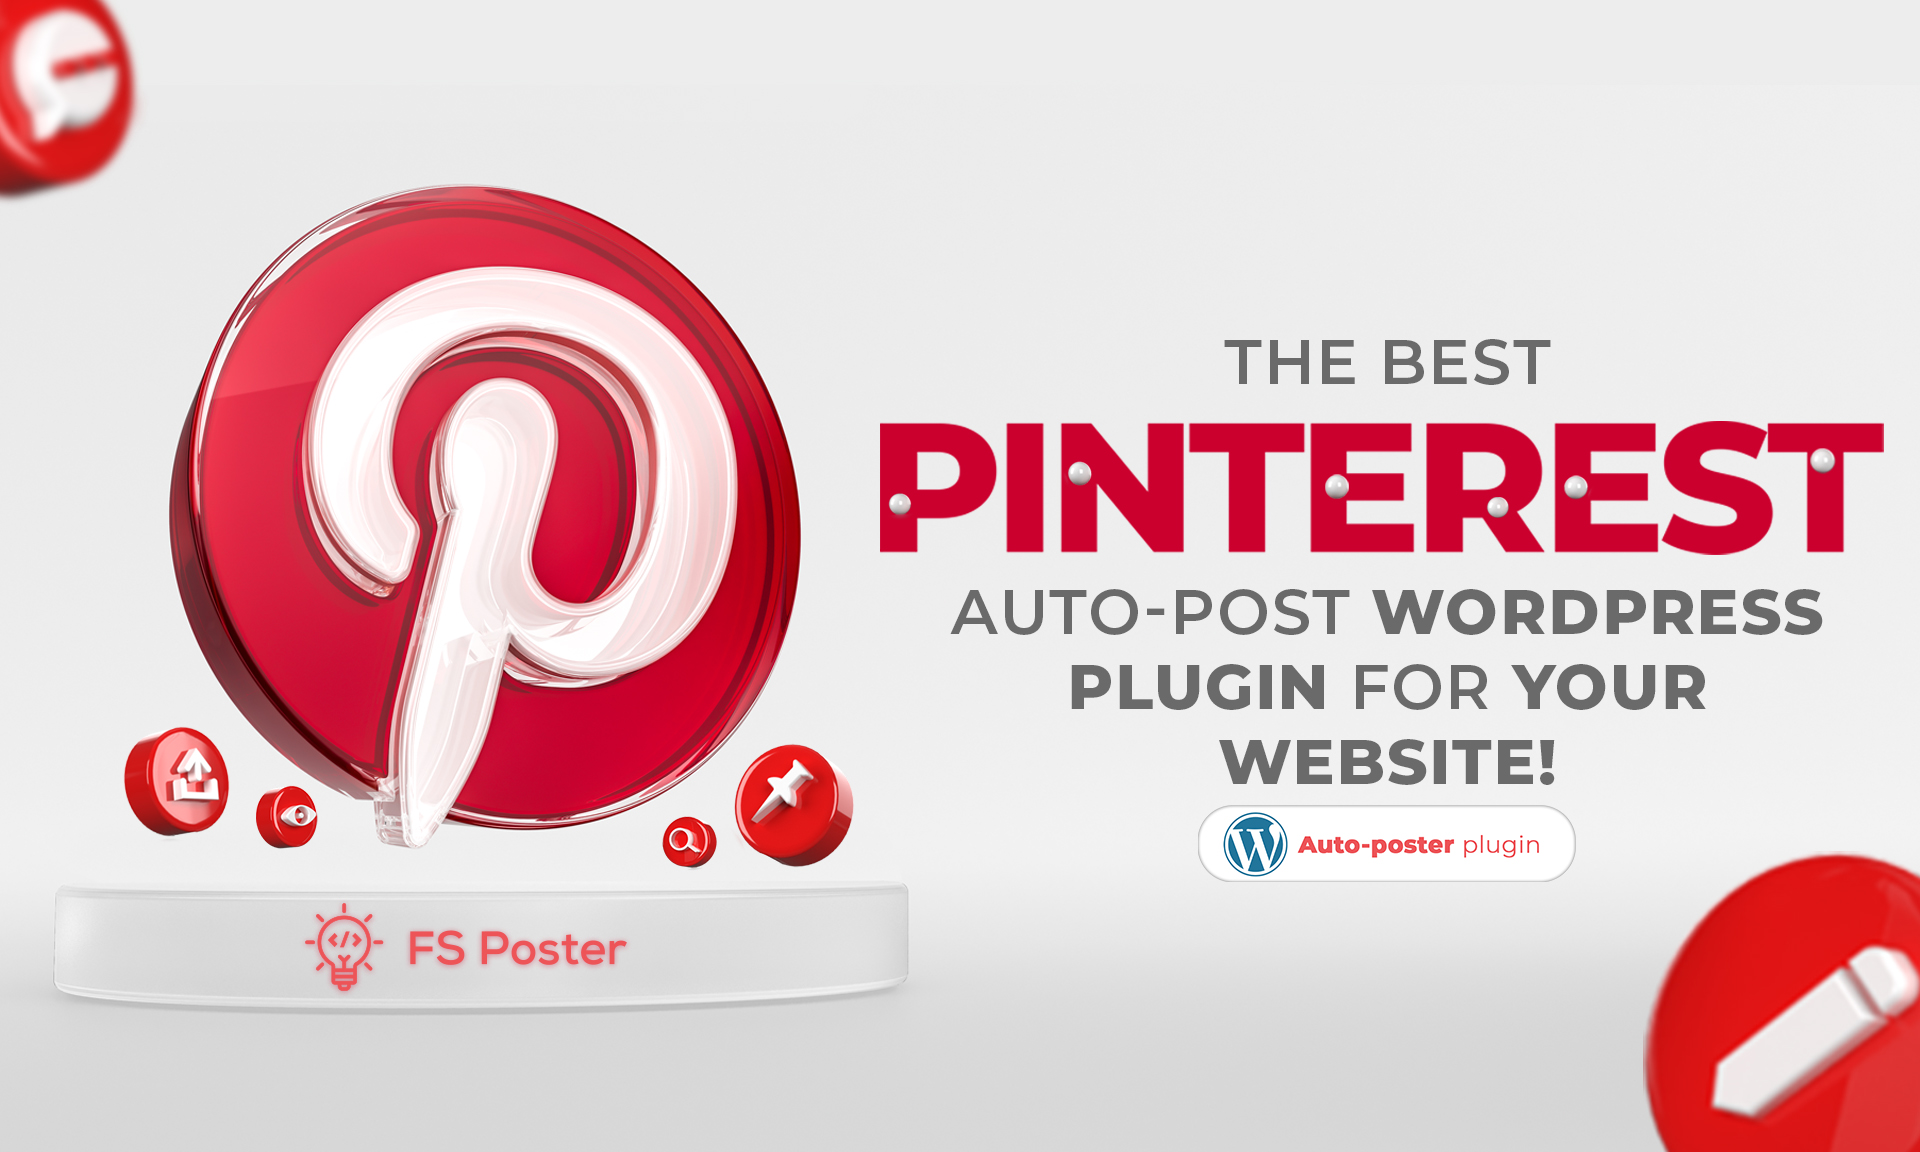 The best Pinterest auto-post WordPress plugin for your website